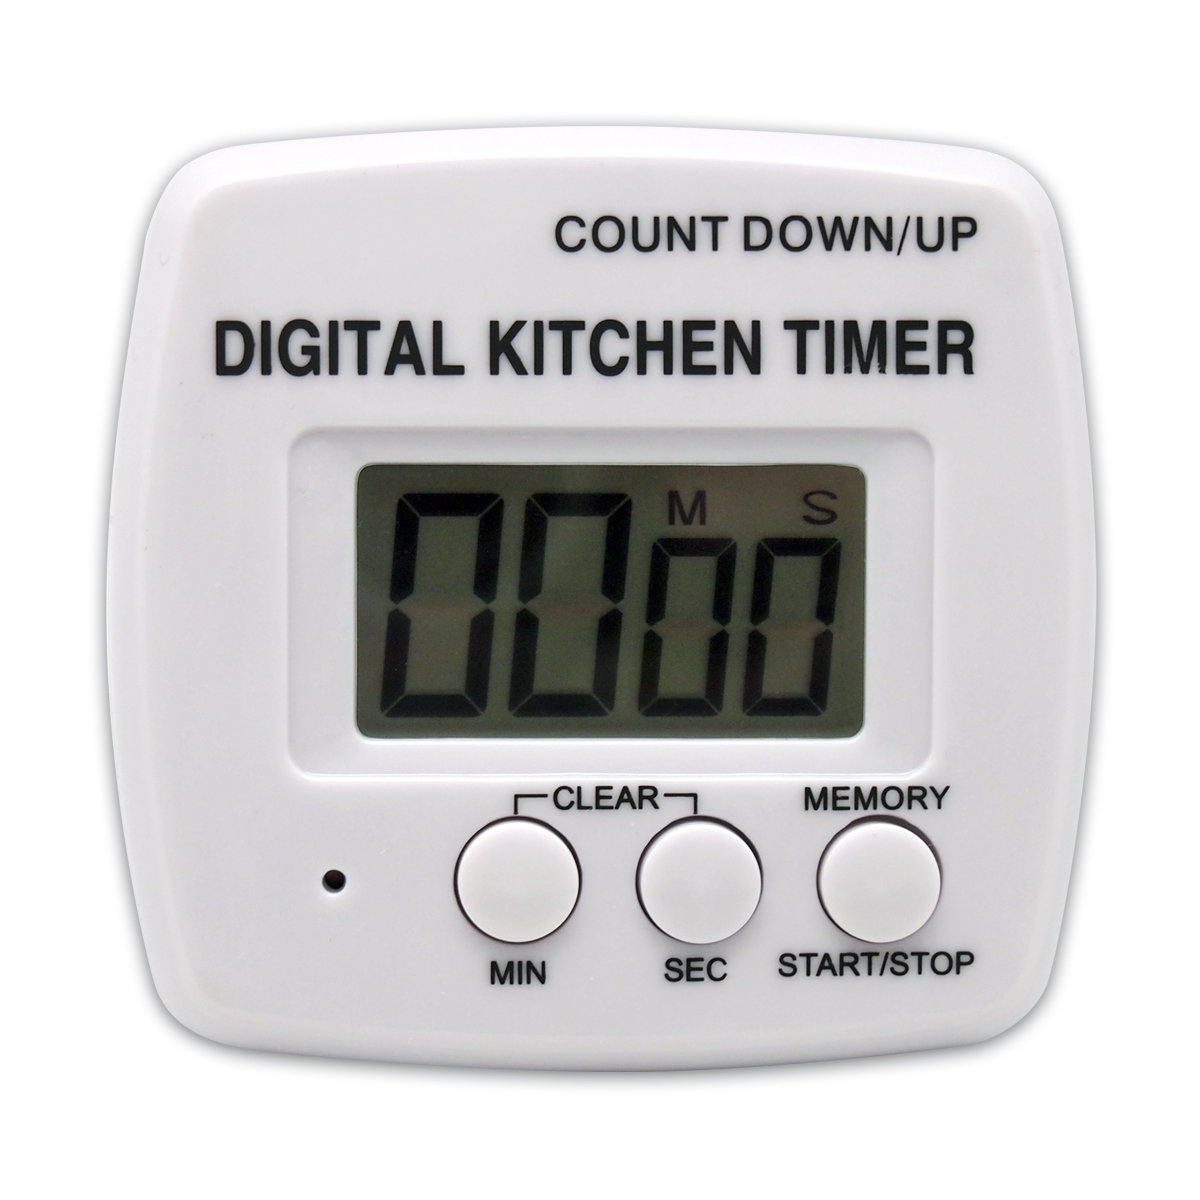 Zakka dada | DIGITAL TIMER KITCHEN MAGNETIC KA0188 | HKTVmall Online ...